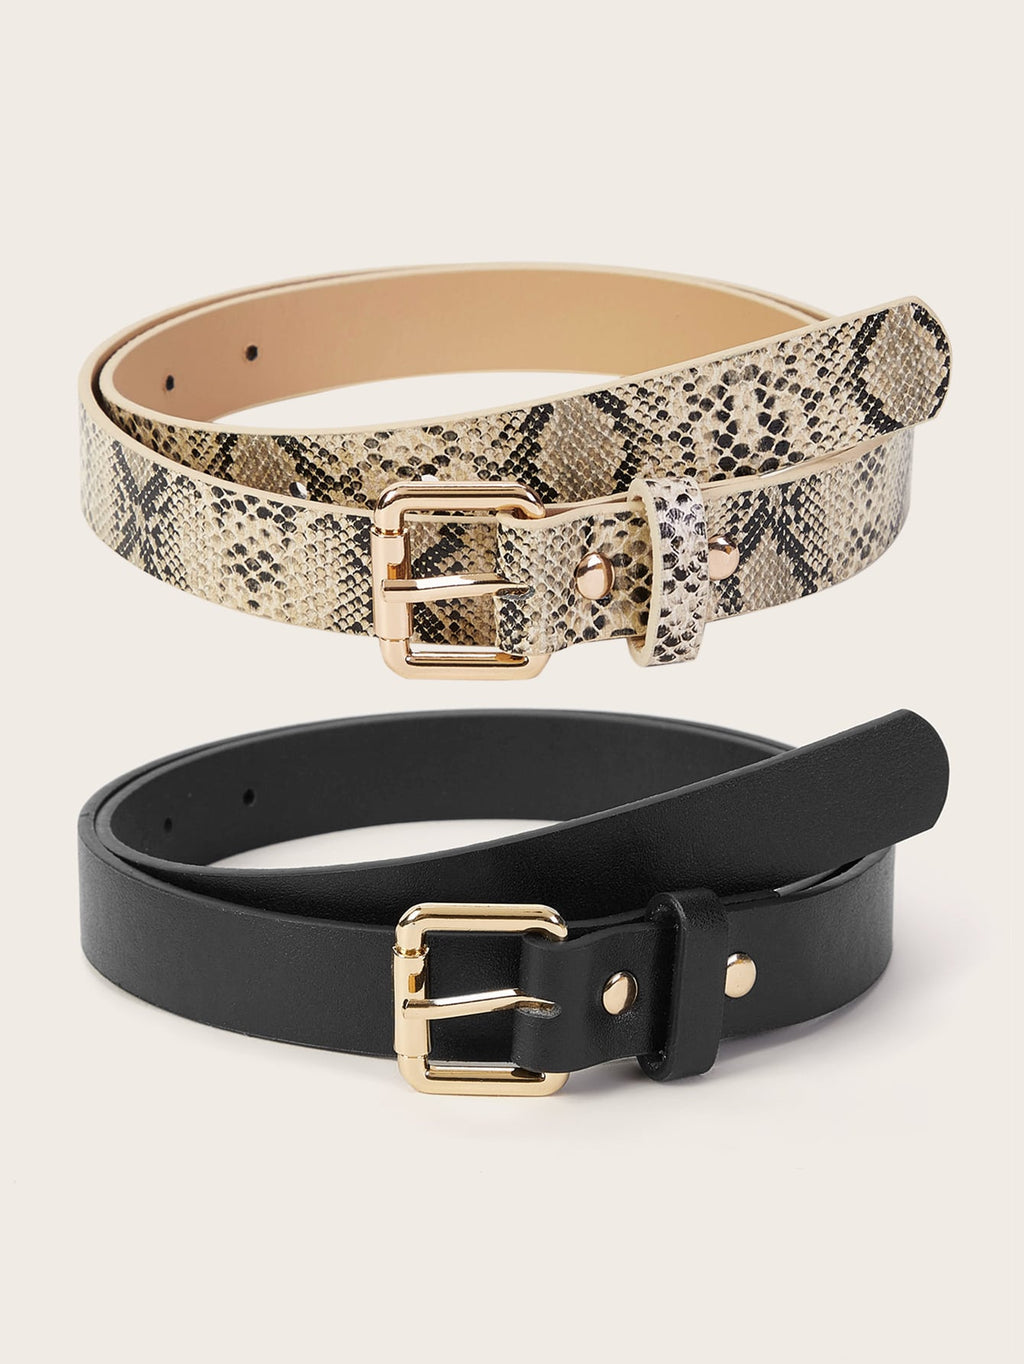 Snakeskin Pattern Metal Buckle Belt 2pcs (3987104071750)